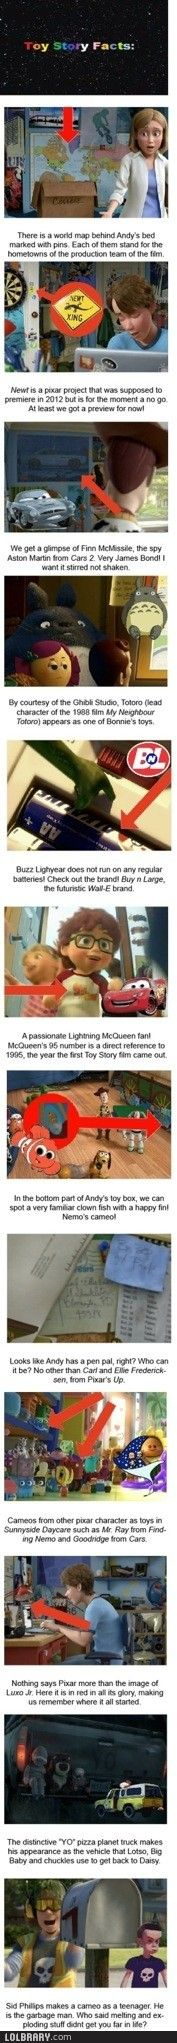 Toy story facts!! I figured out the last one the first time I watched it!